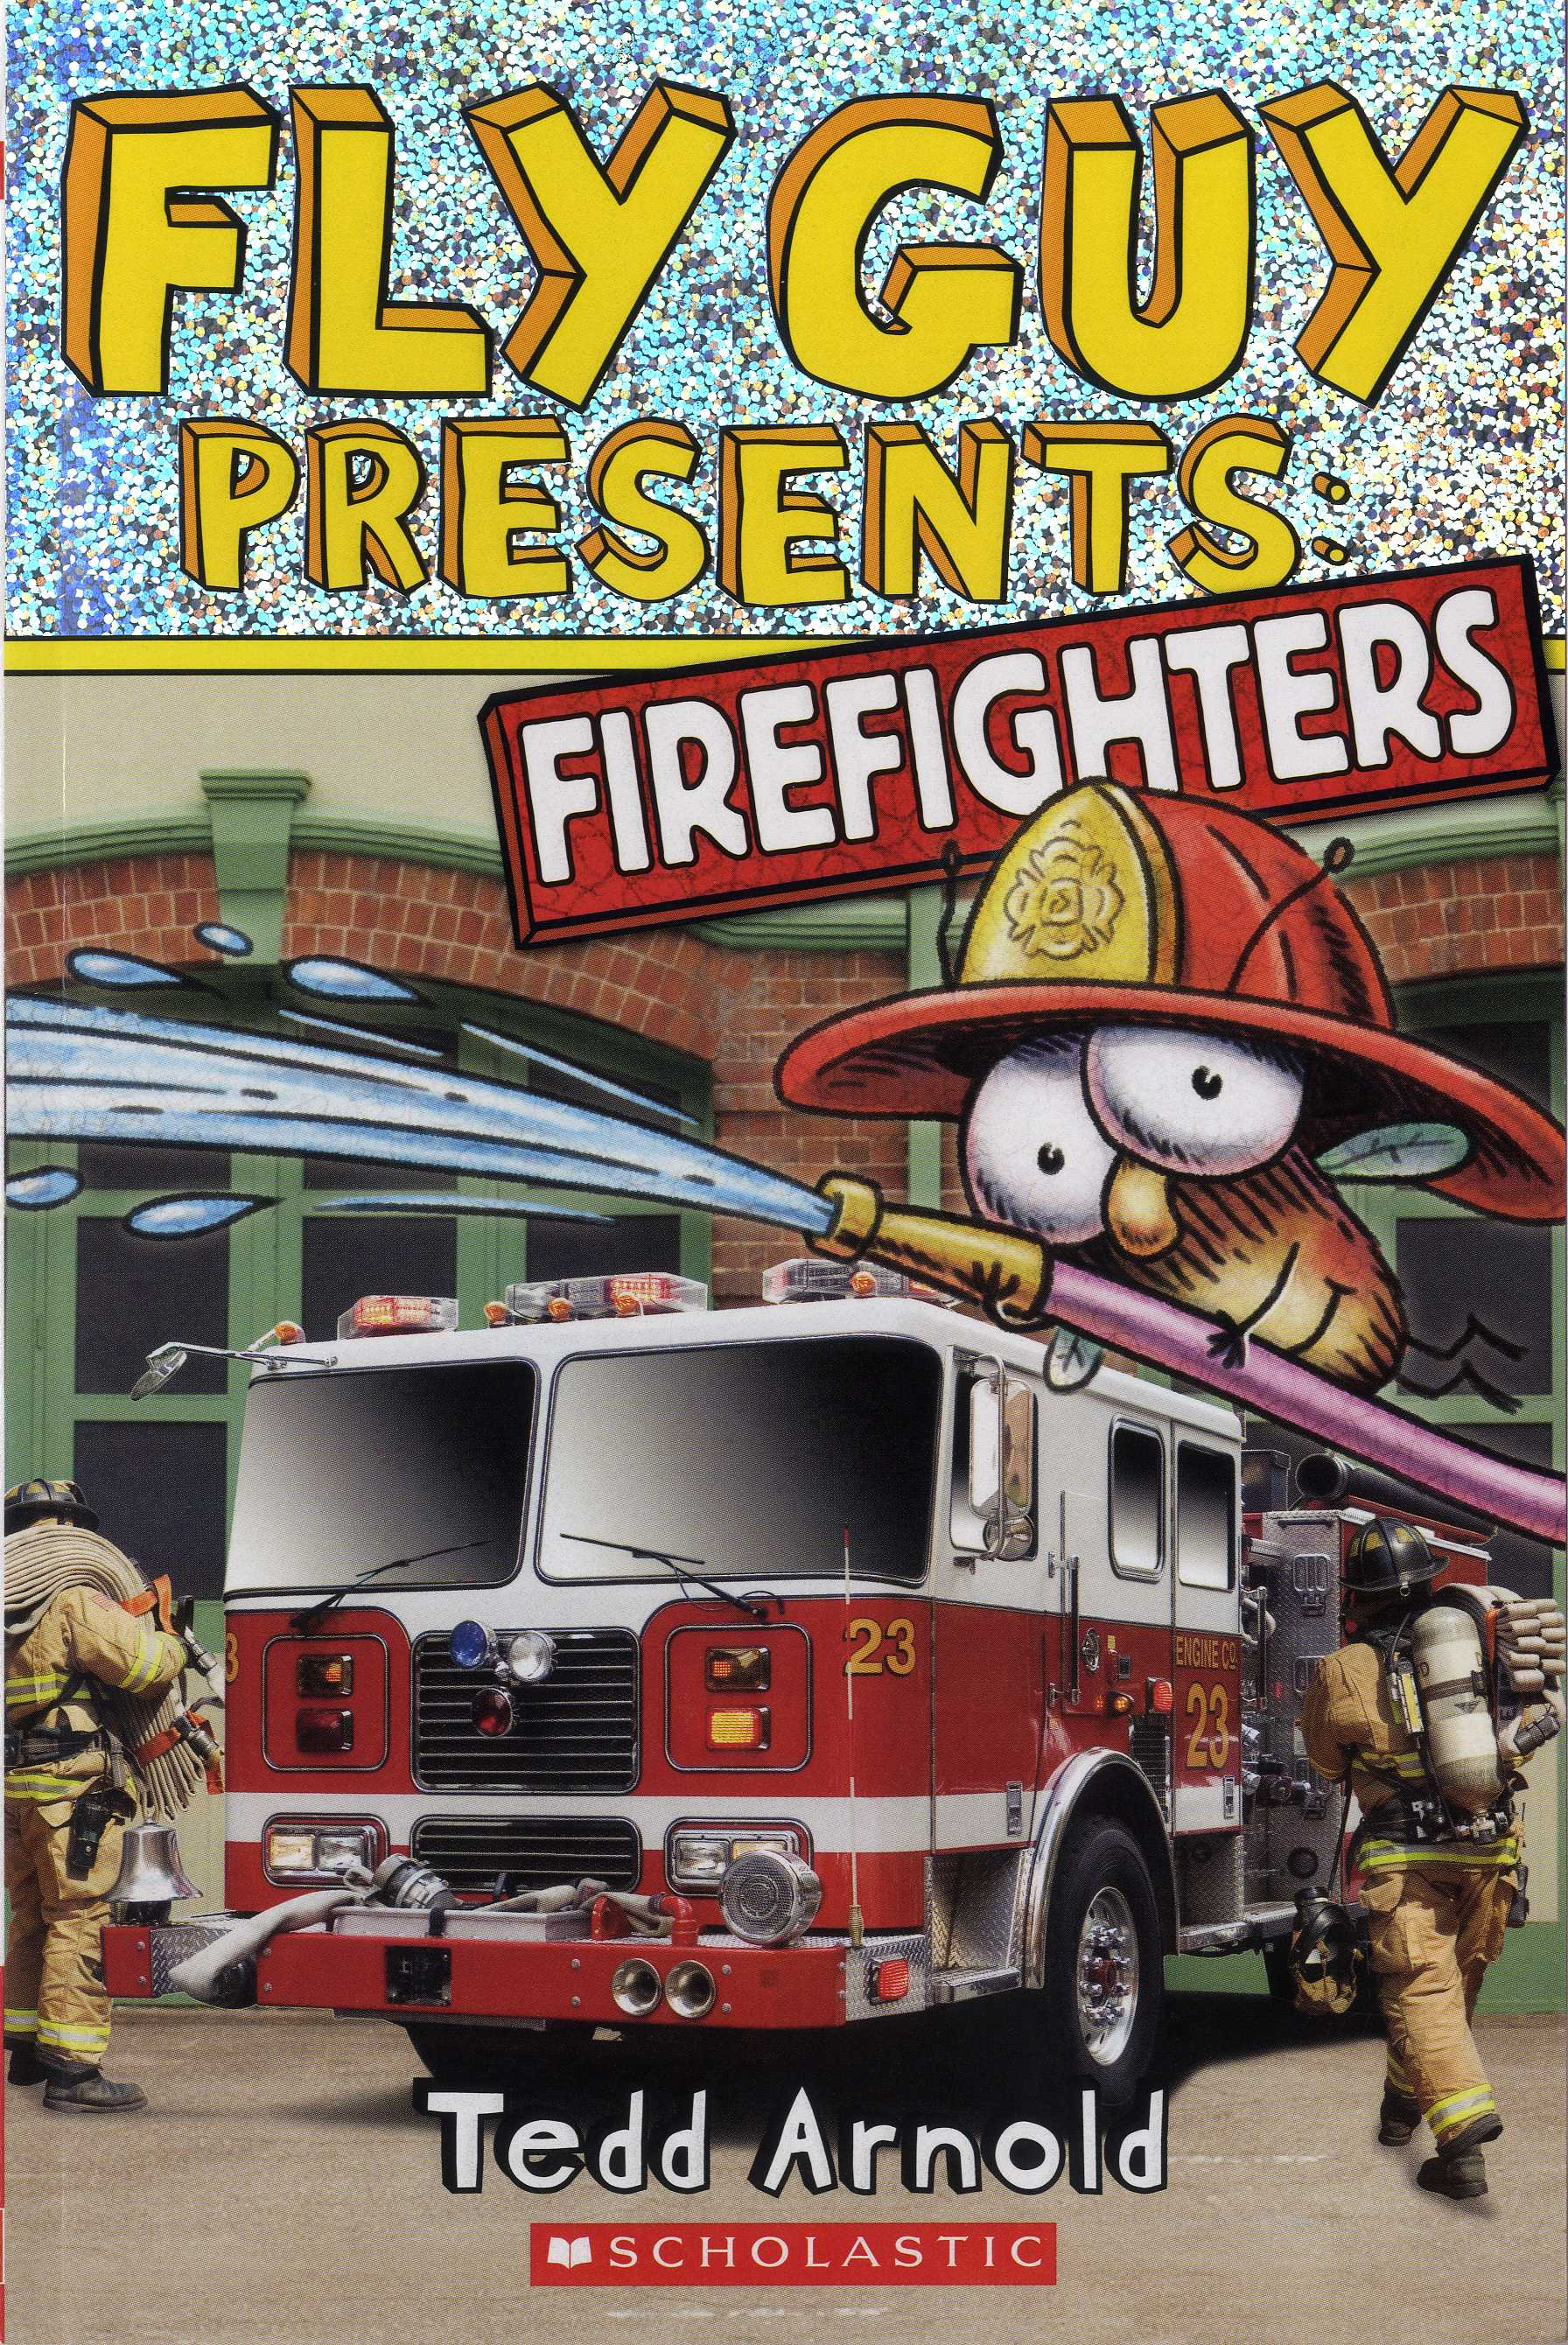 Fly Guy Presents: Firefighters (PB)